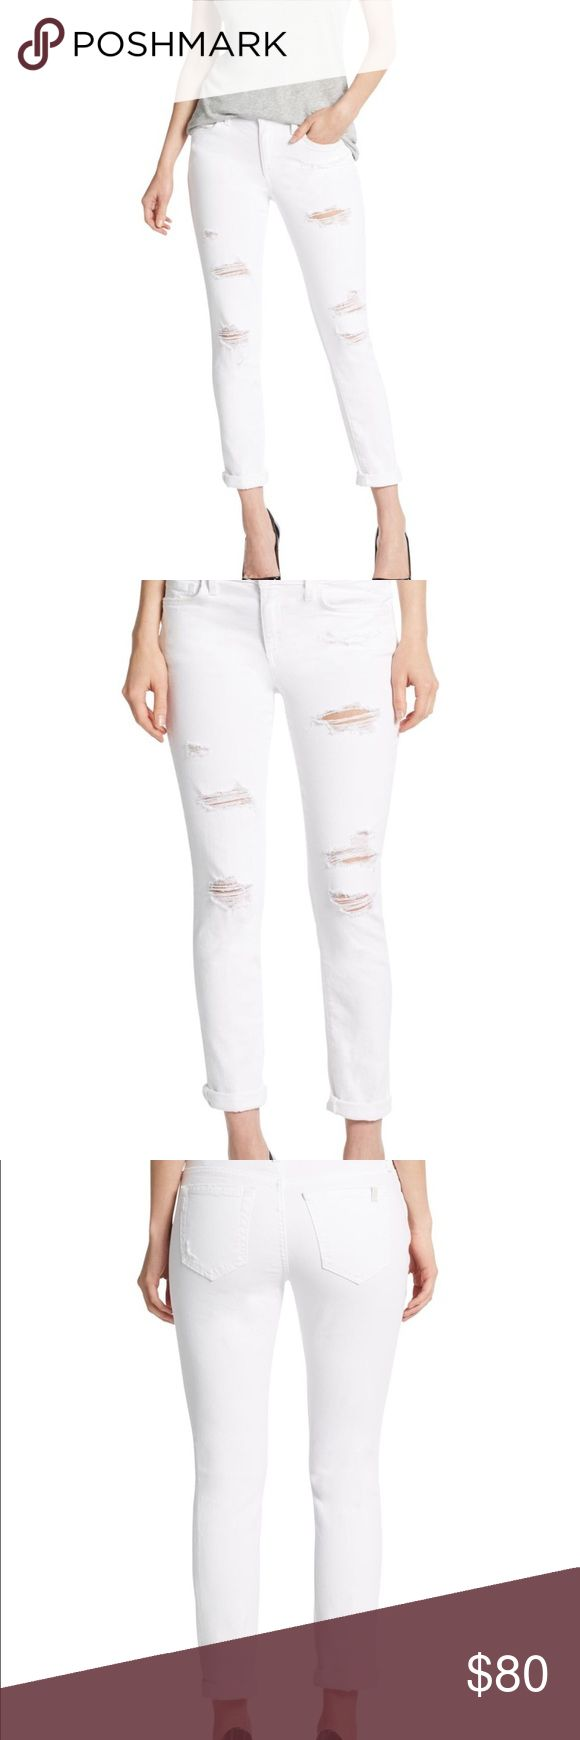 Women's White Distressed Rolled Cuff Skinny Jeans White distressed cuff skinny jeans. Button closure. Zip fly. 5 pockets. Stretchable material. Inseam: approximately 26'' Size: 29 No Trade. Joe's Jeans Jeans Skinny